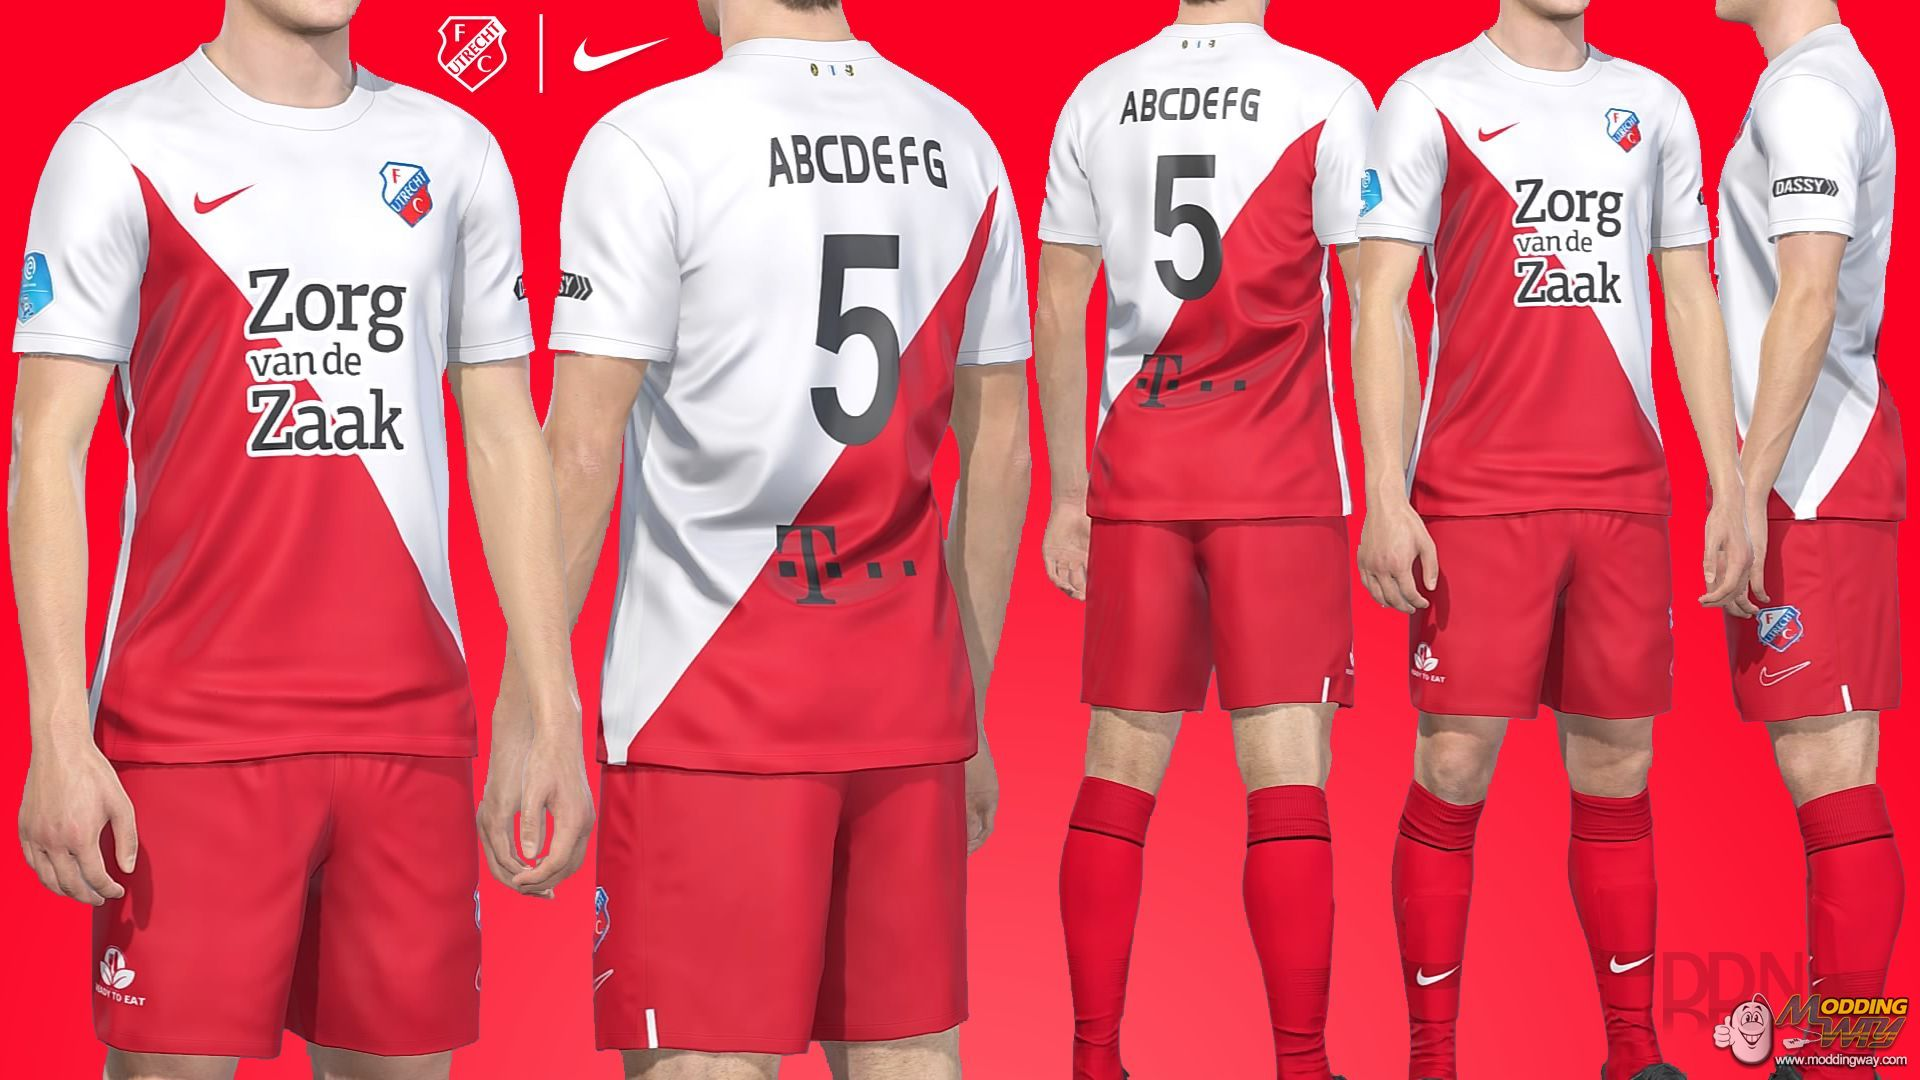 Fc Utrecht 2019 2020 Nike Home Kit Pro Evolution Soccer 2019 At Moddingway